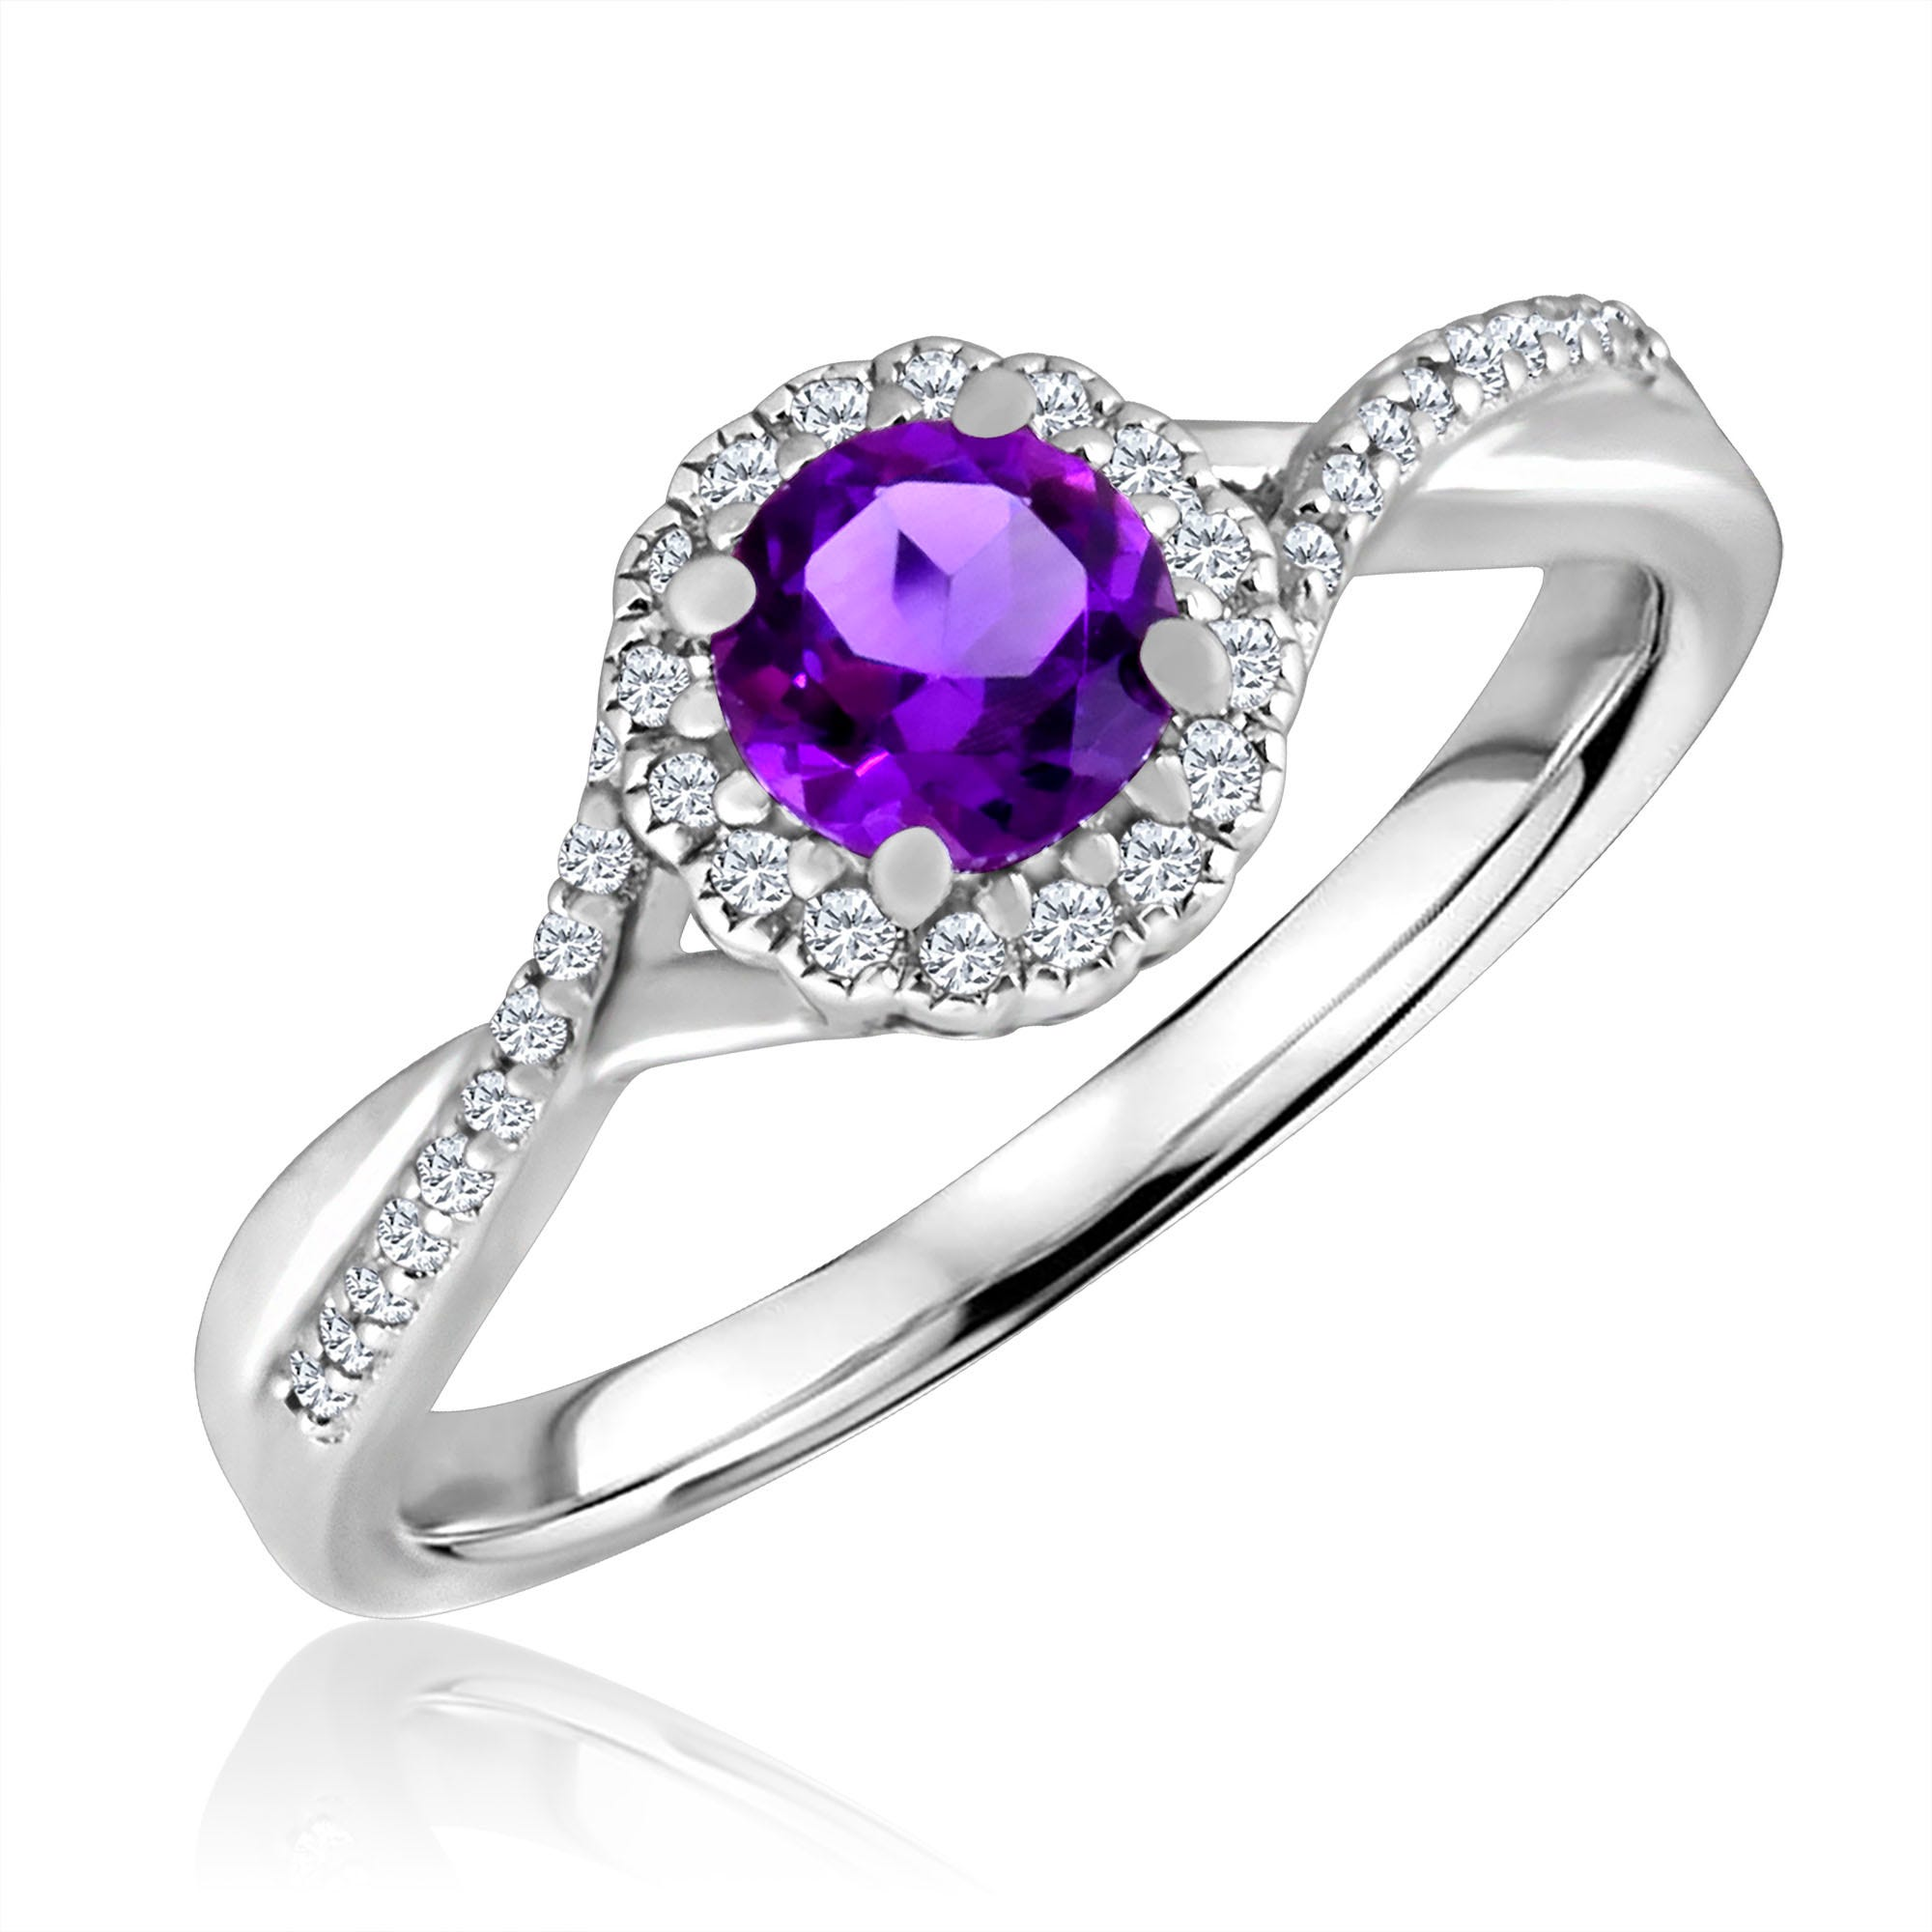 Round-Cut Amethyst & Diamond Infinity Ring in Sterling Silver